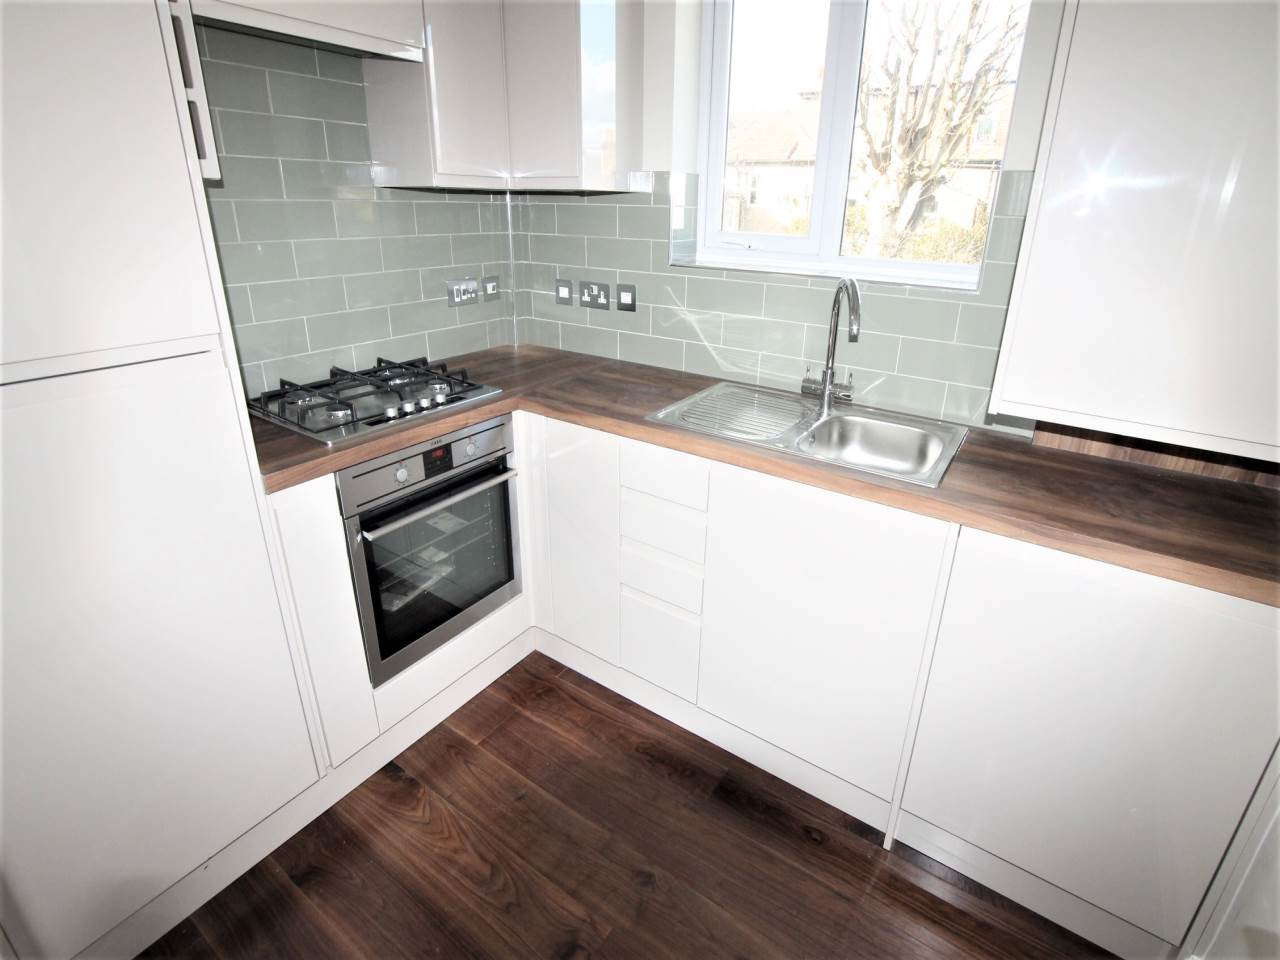 2 bed house to rent in Butterfields, Walthamstow 0